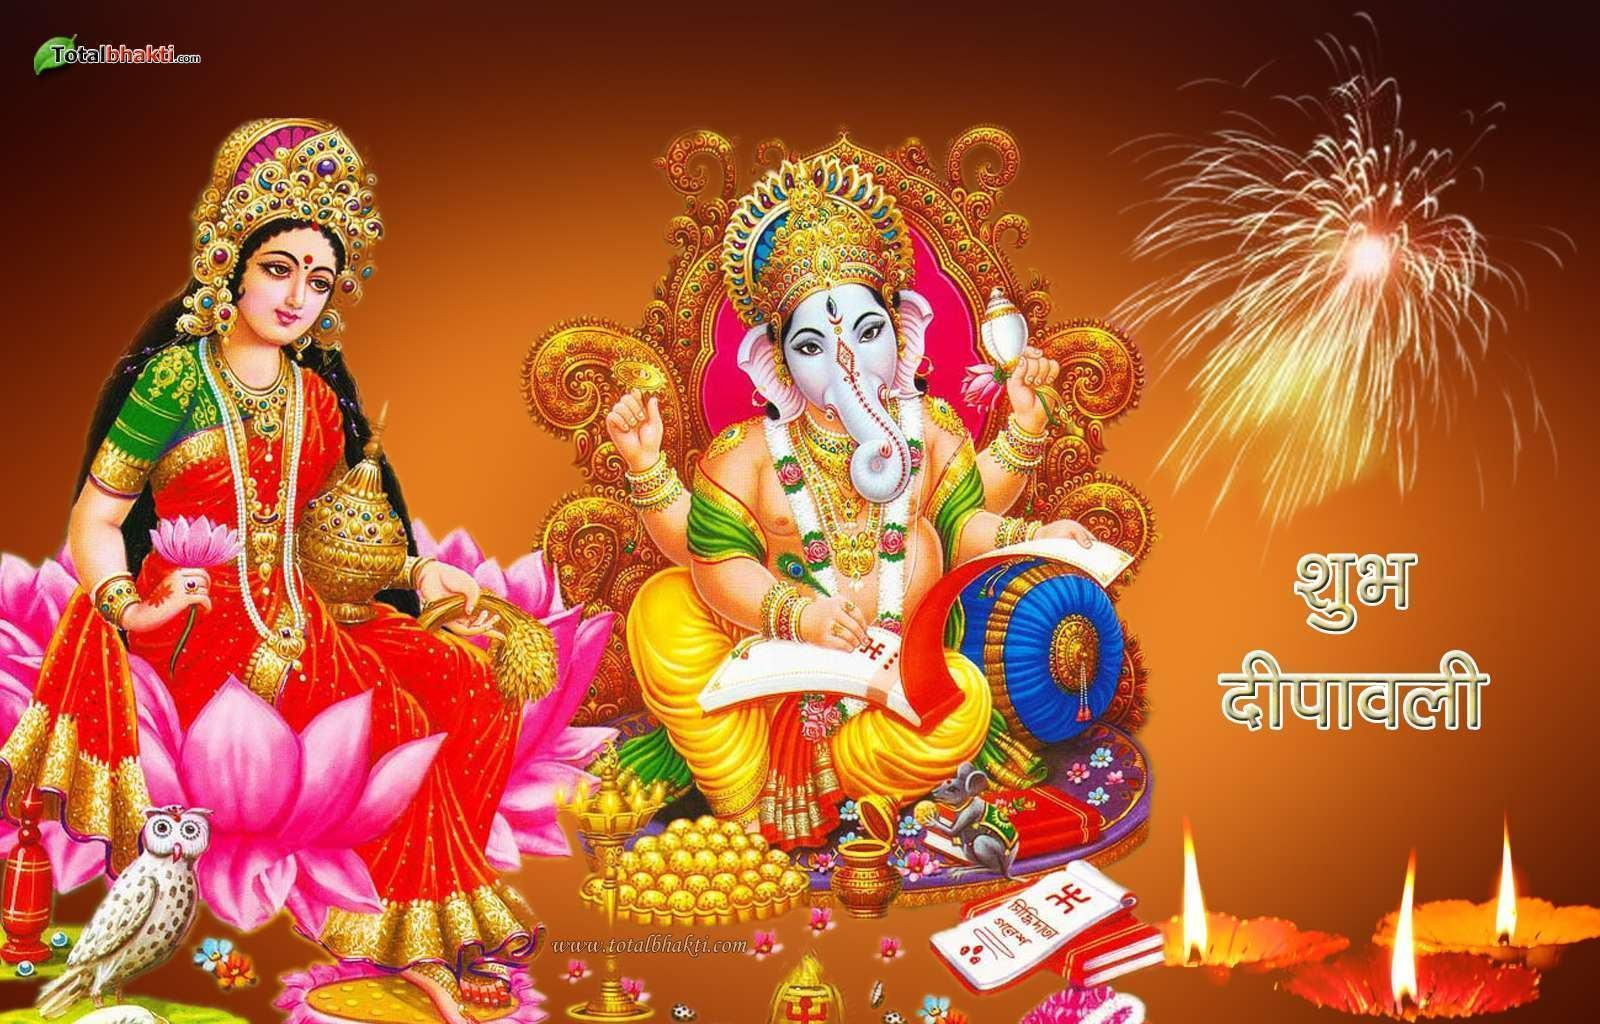 Hindu picture Lord Ganesh HD God Images,Wallpapers & Backgrounds